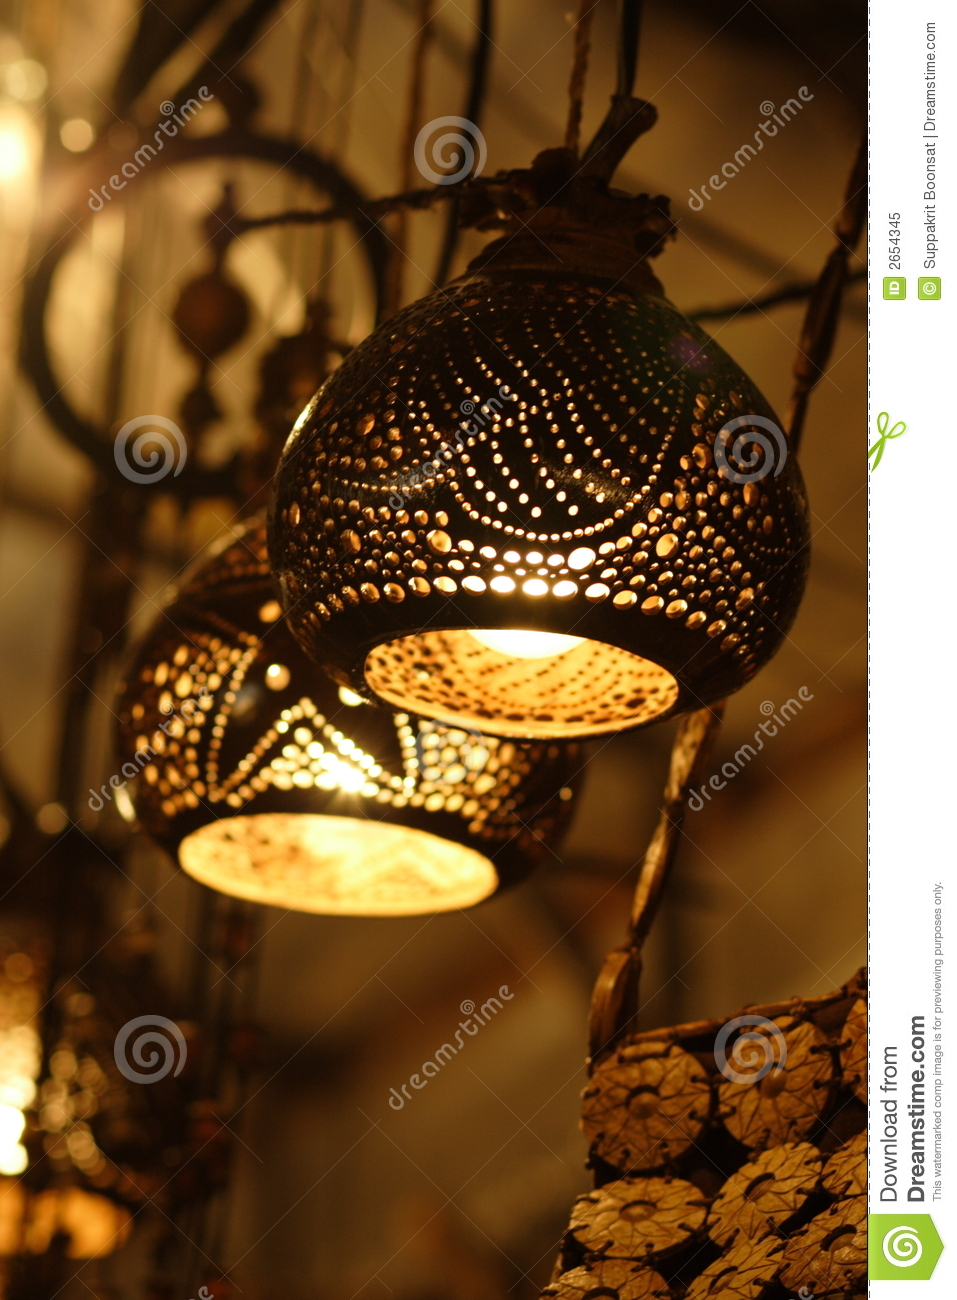 Intricate Lampshades Stock Image Image Of Decor Lamps